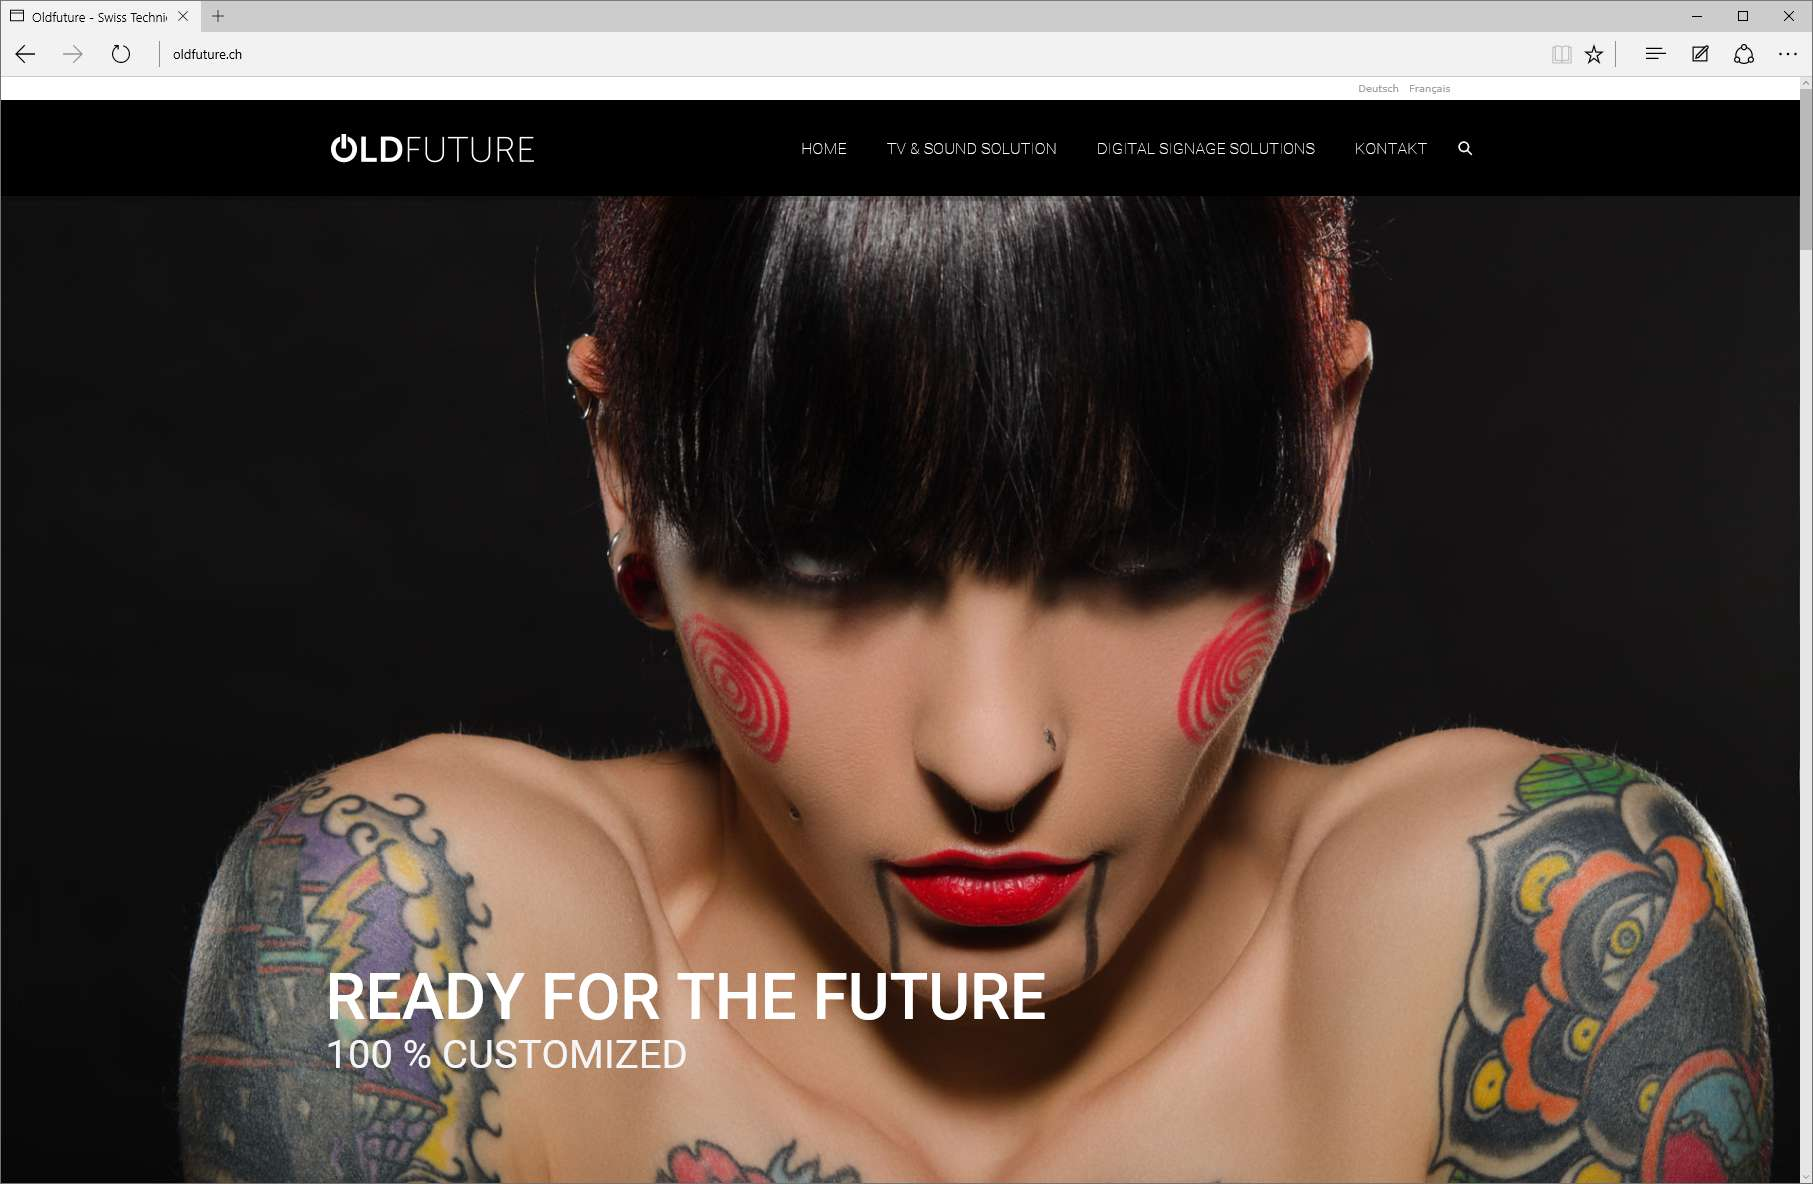 Oldfuture Webseite